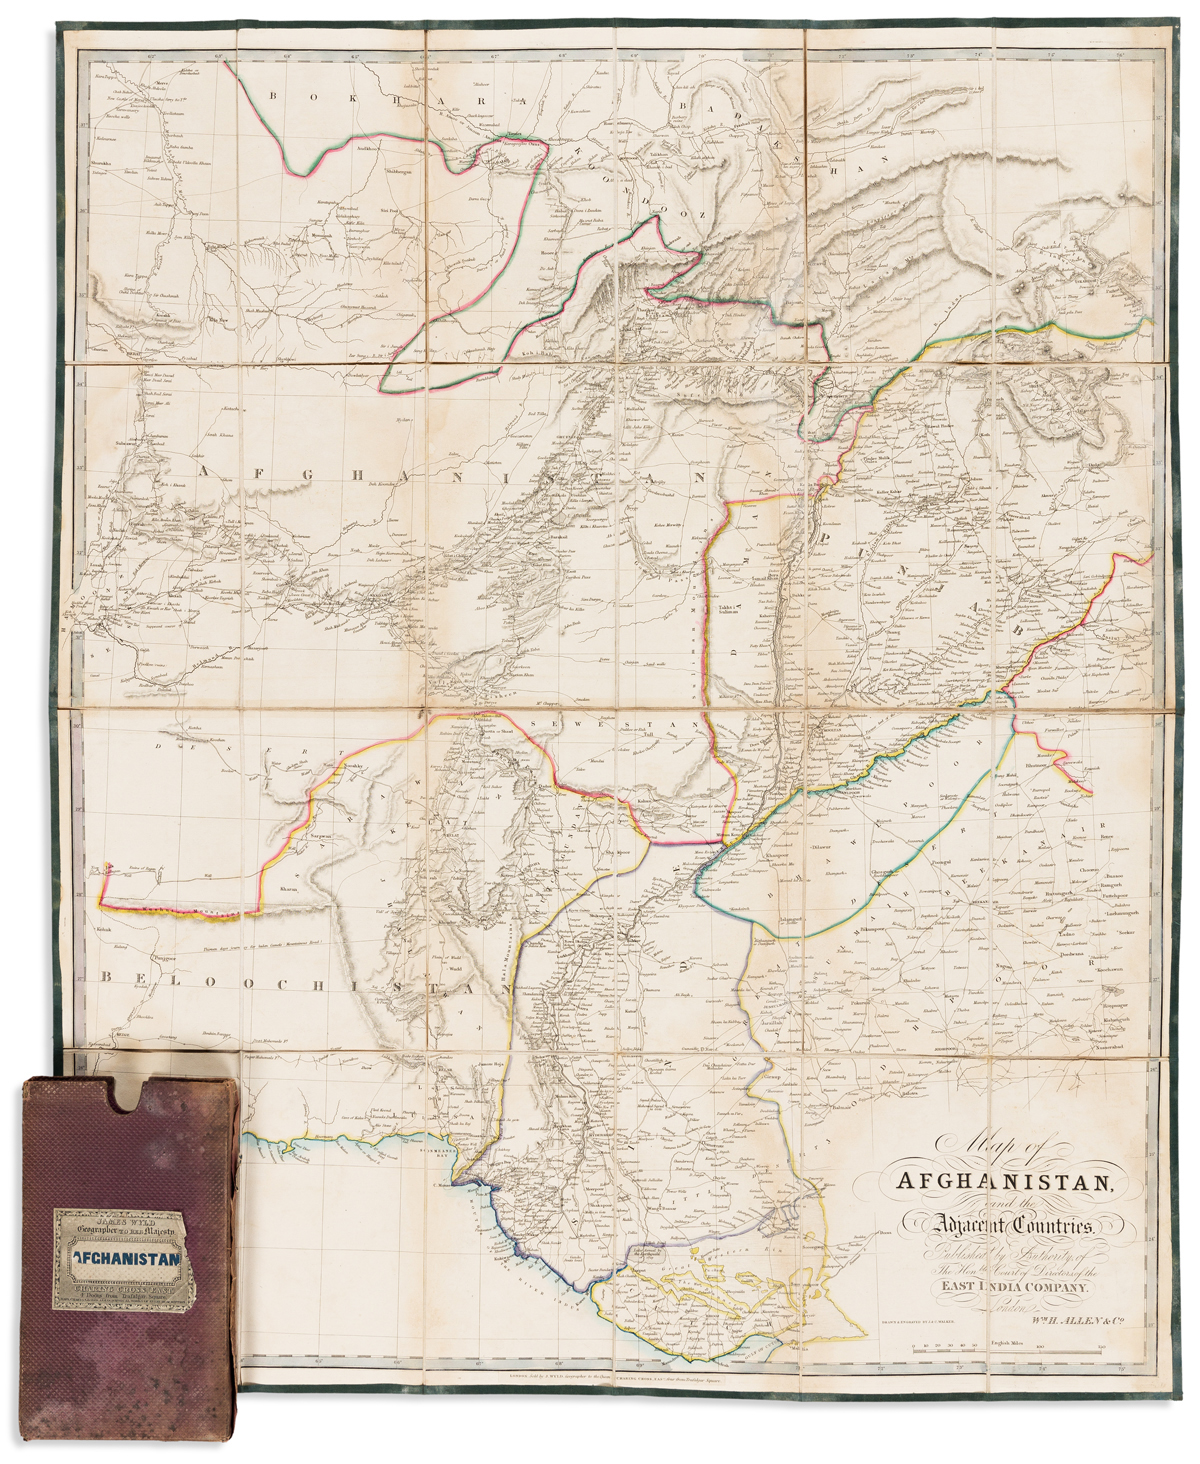 (AFGHANISTAN.) Allen, William H. Map of Afghanistan and the Adjacent Countries